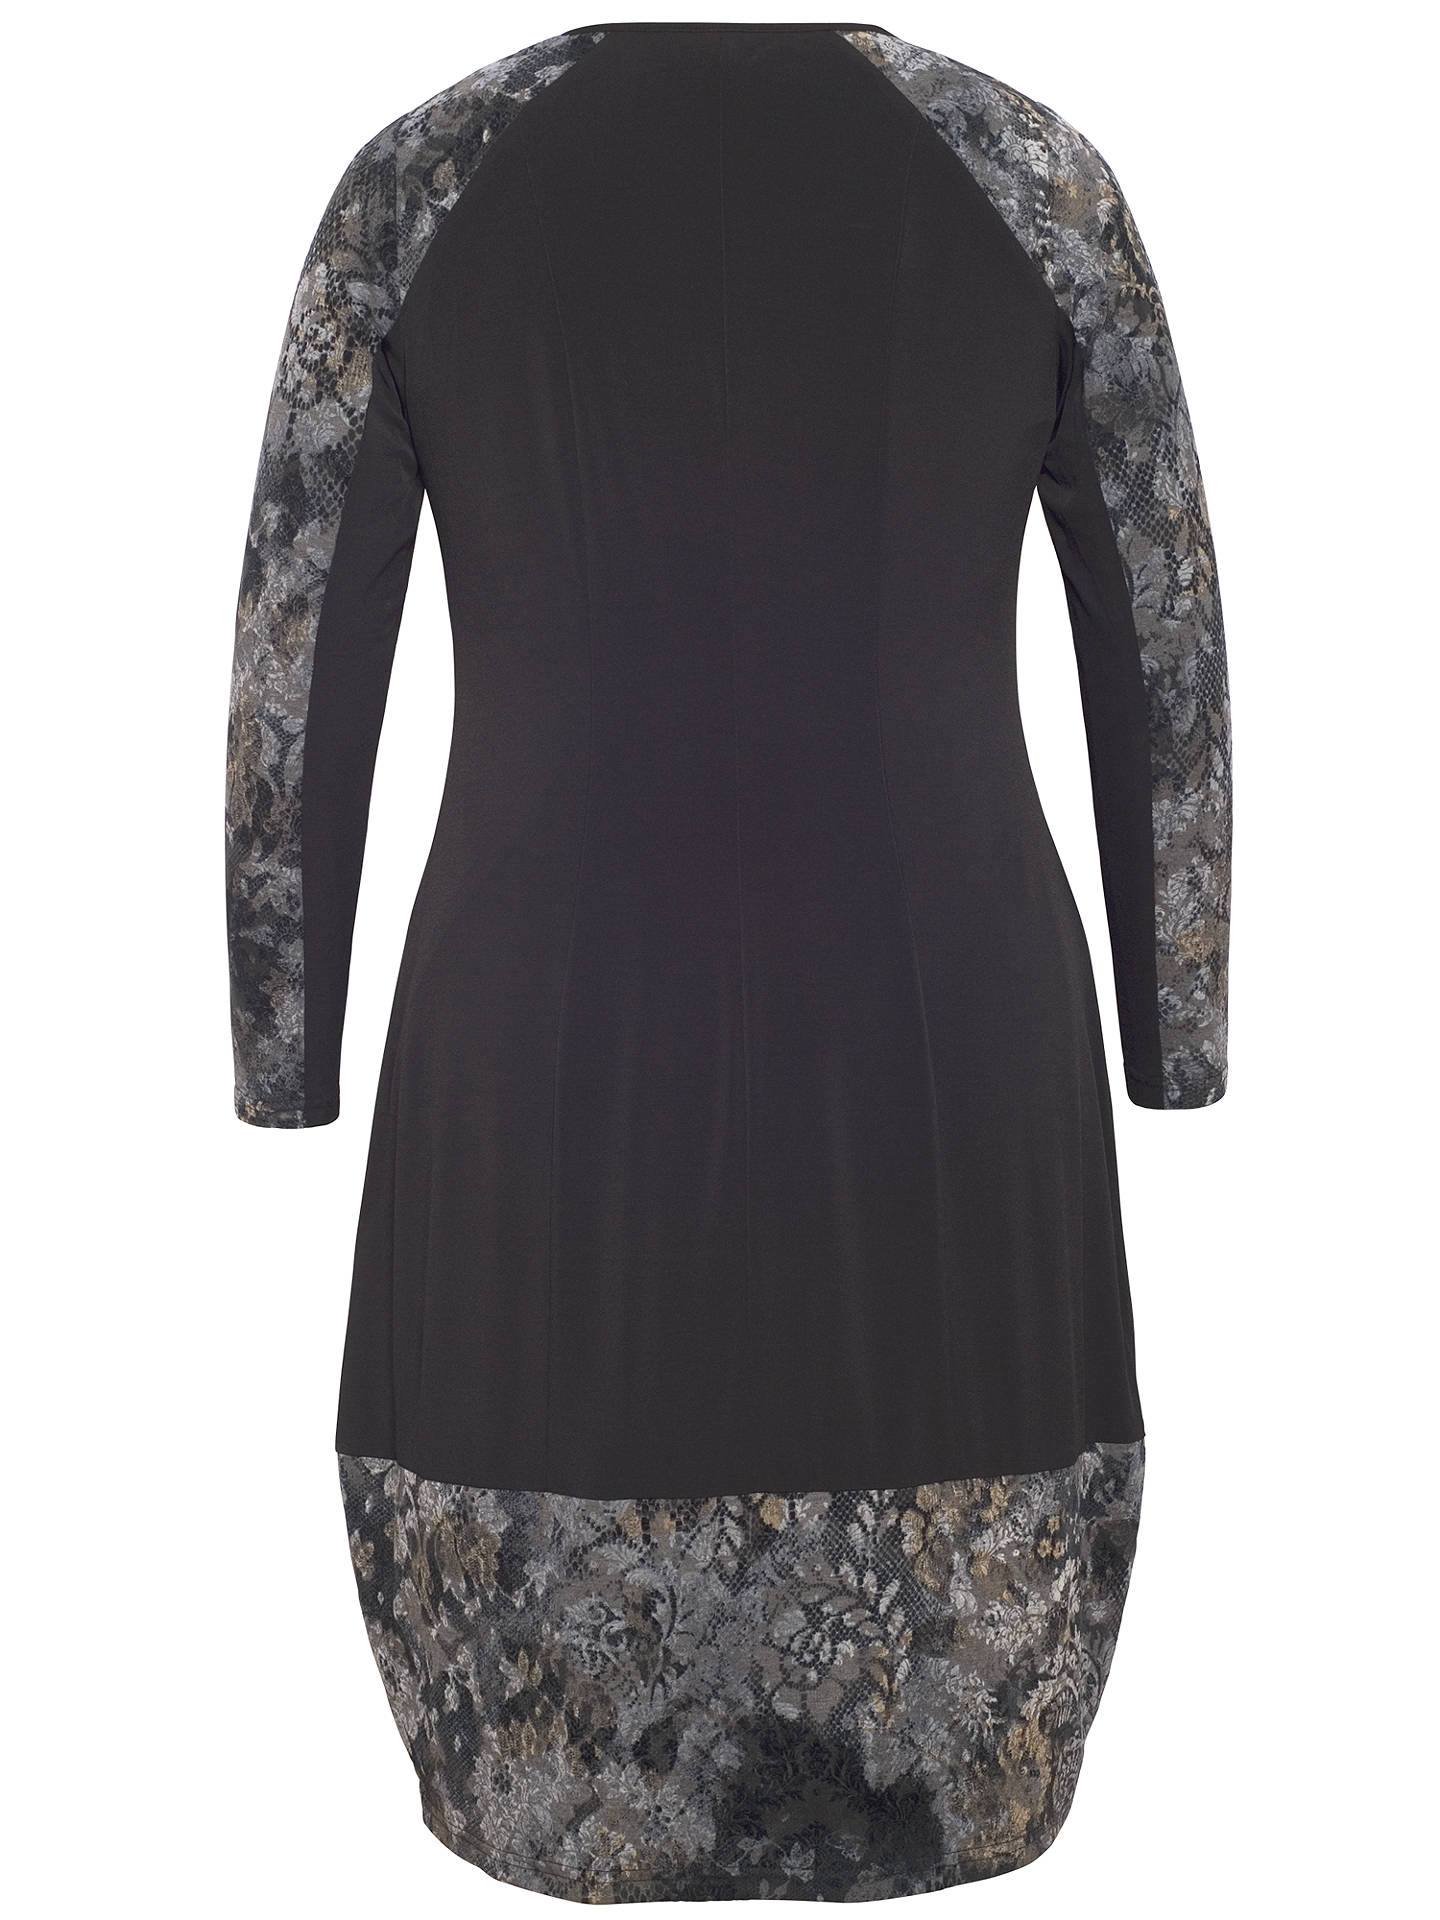 BuyChesca Flock Print Jersey Dress, Black, 12-14 Online at johnlewis.com